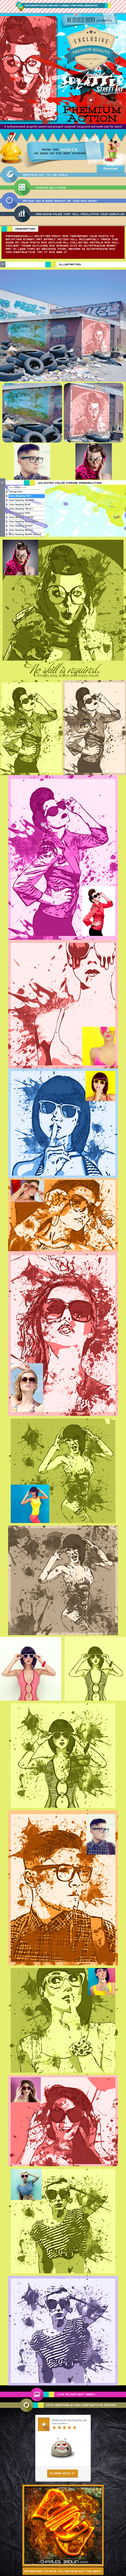 Creative Splatter Street Art - Photo Effects Actions